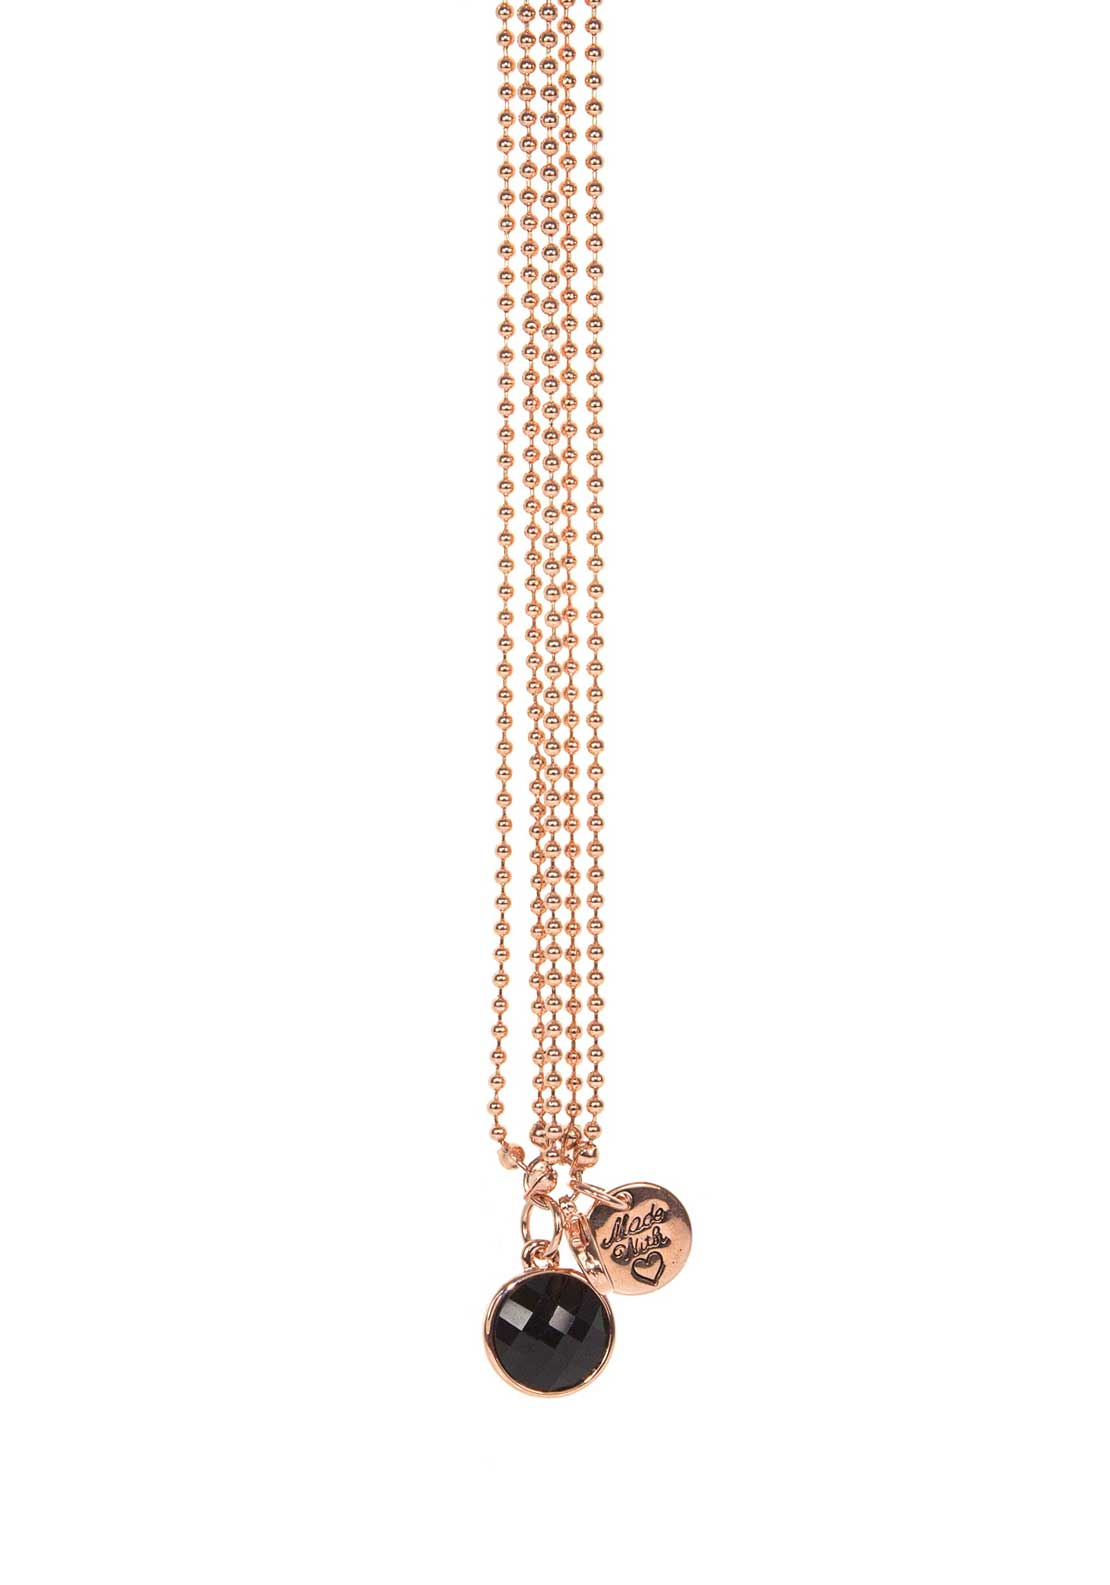 Absolute Jewellery Multi Strand Ball Chain Bracelet, Rose Gold